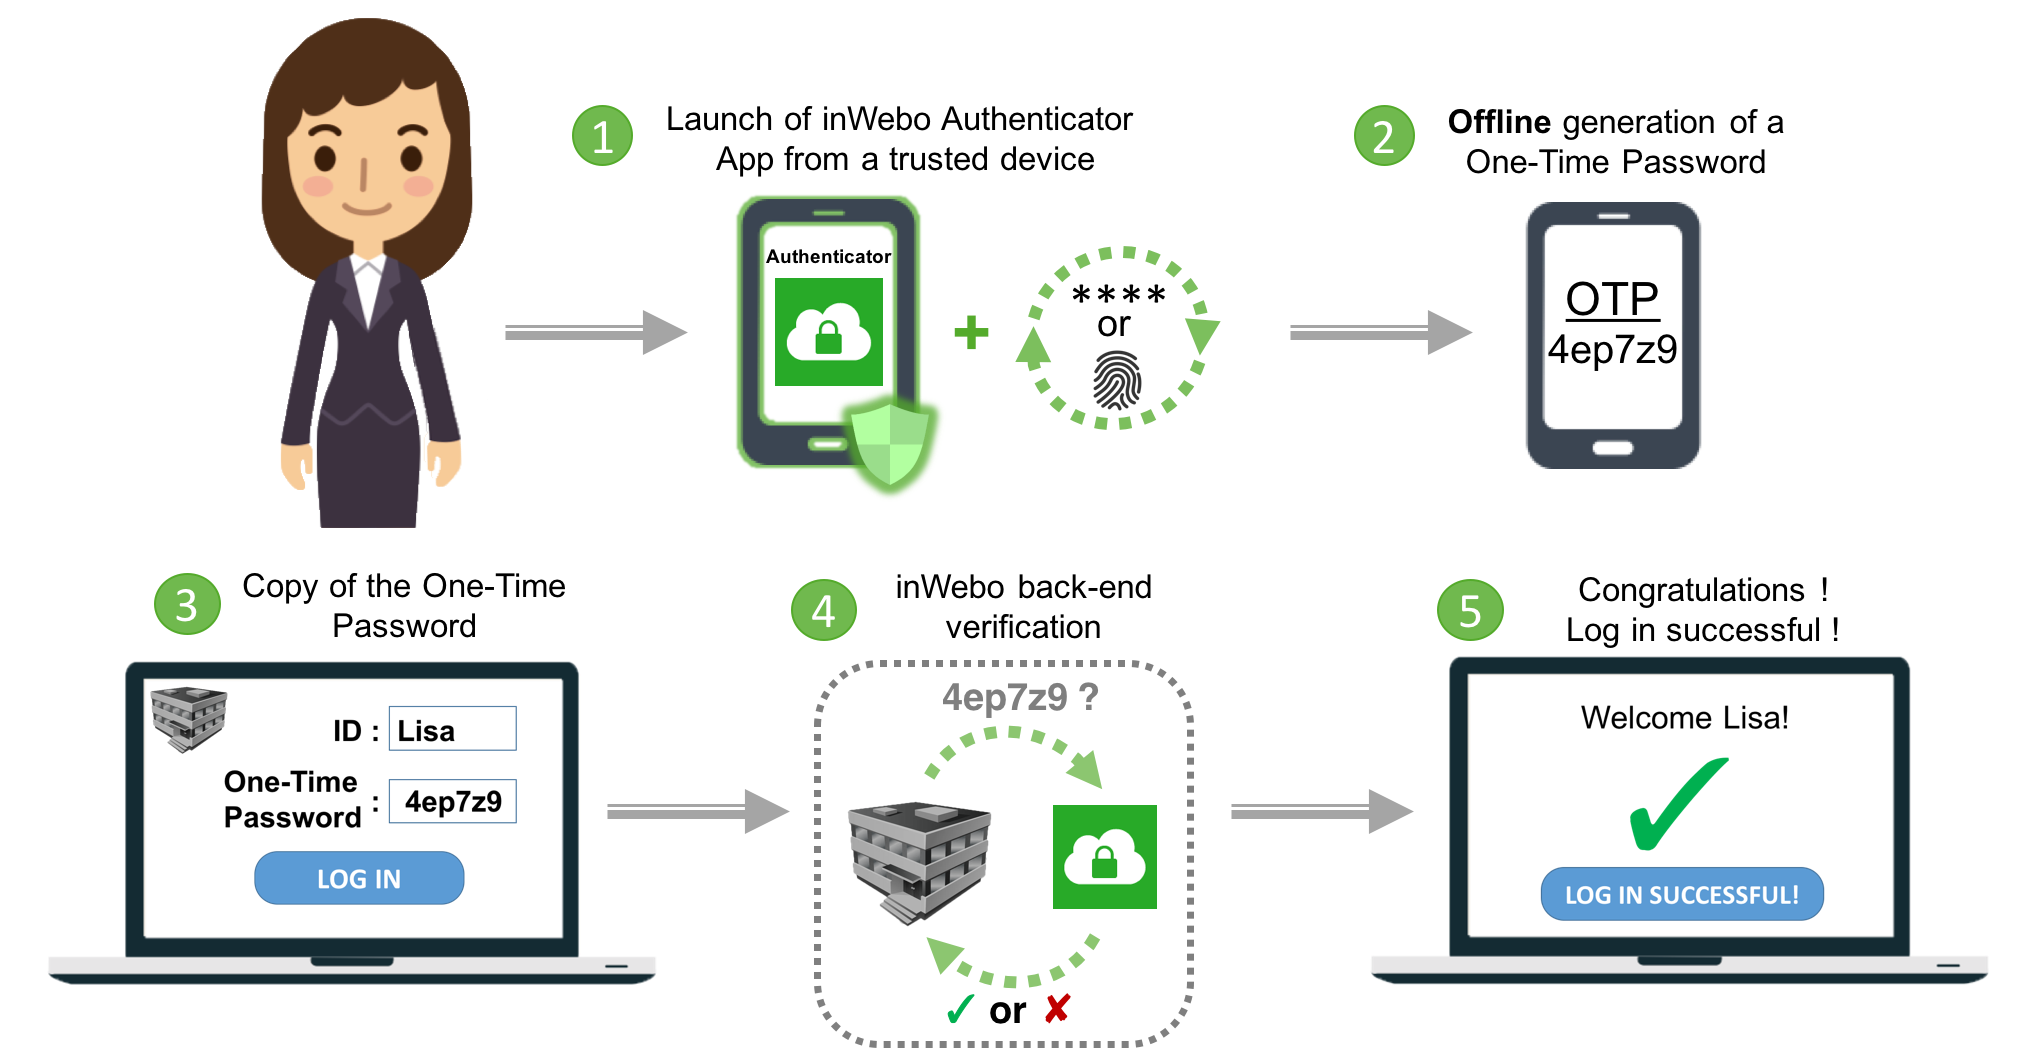 Offline OTP generation using any cell or smartphone as a trusted device